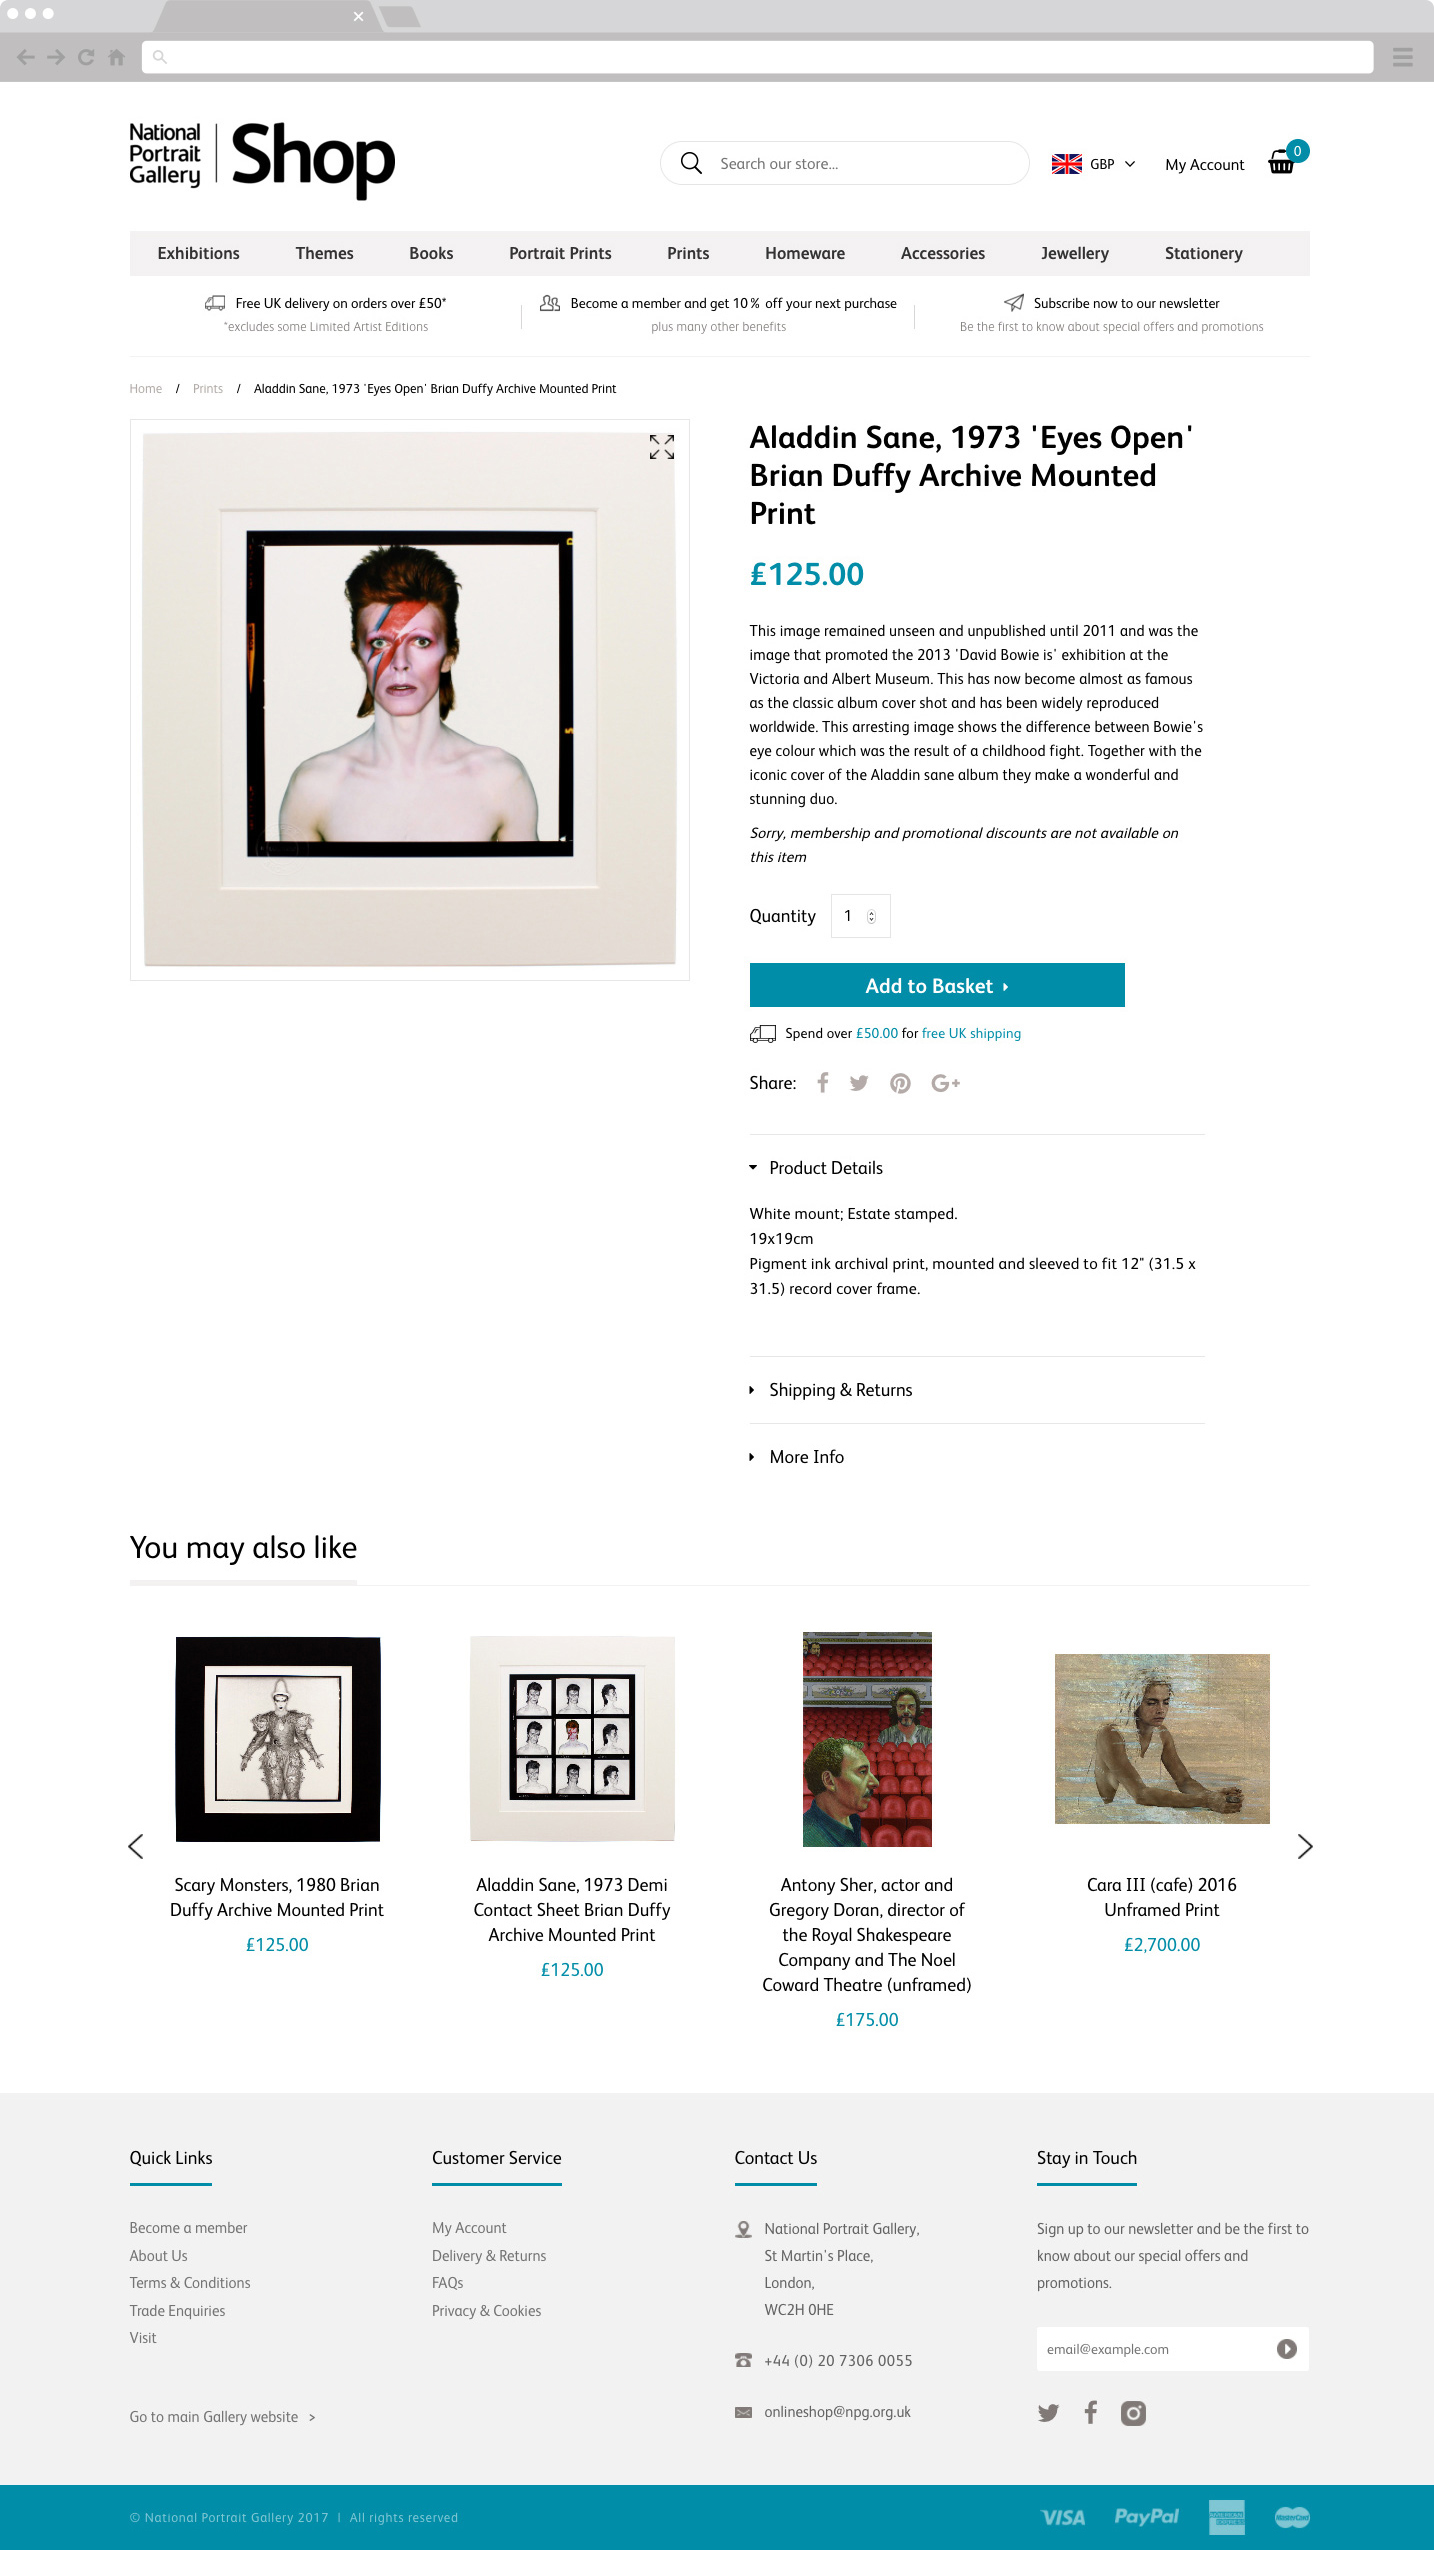 National Portrait Gallery Shop Product PAge